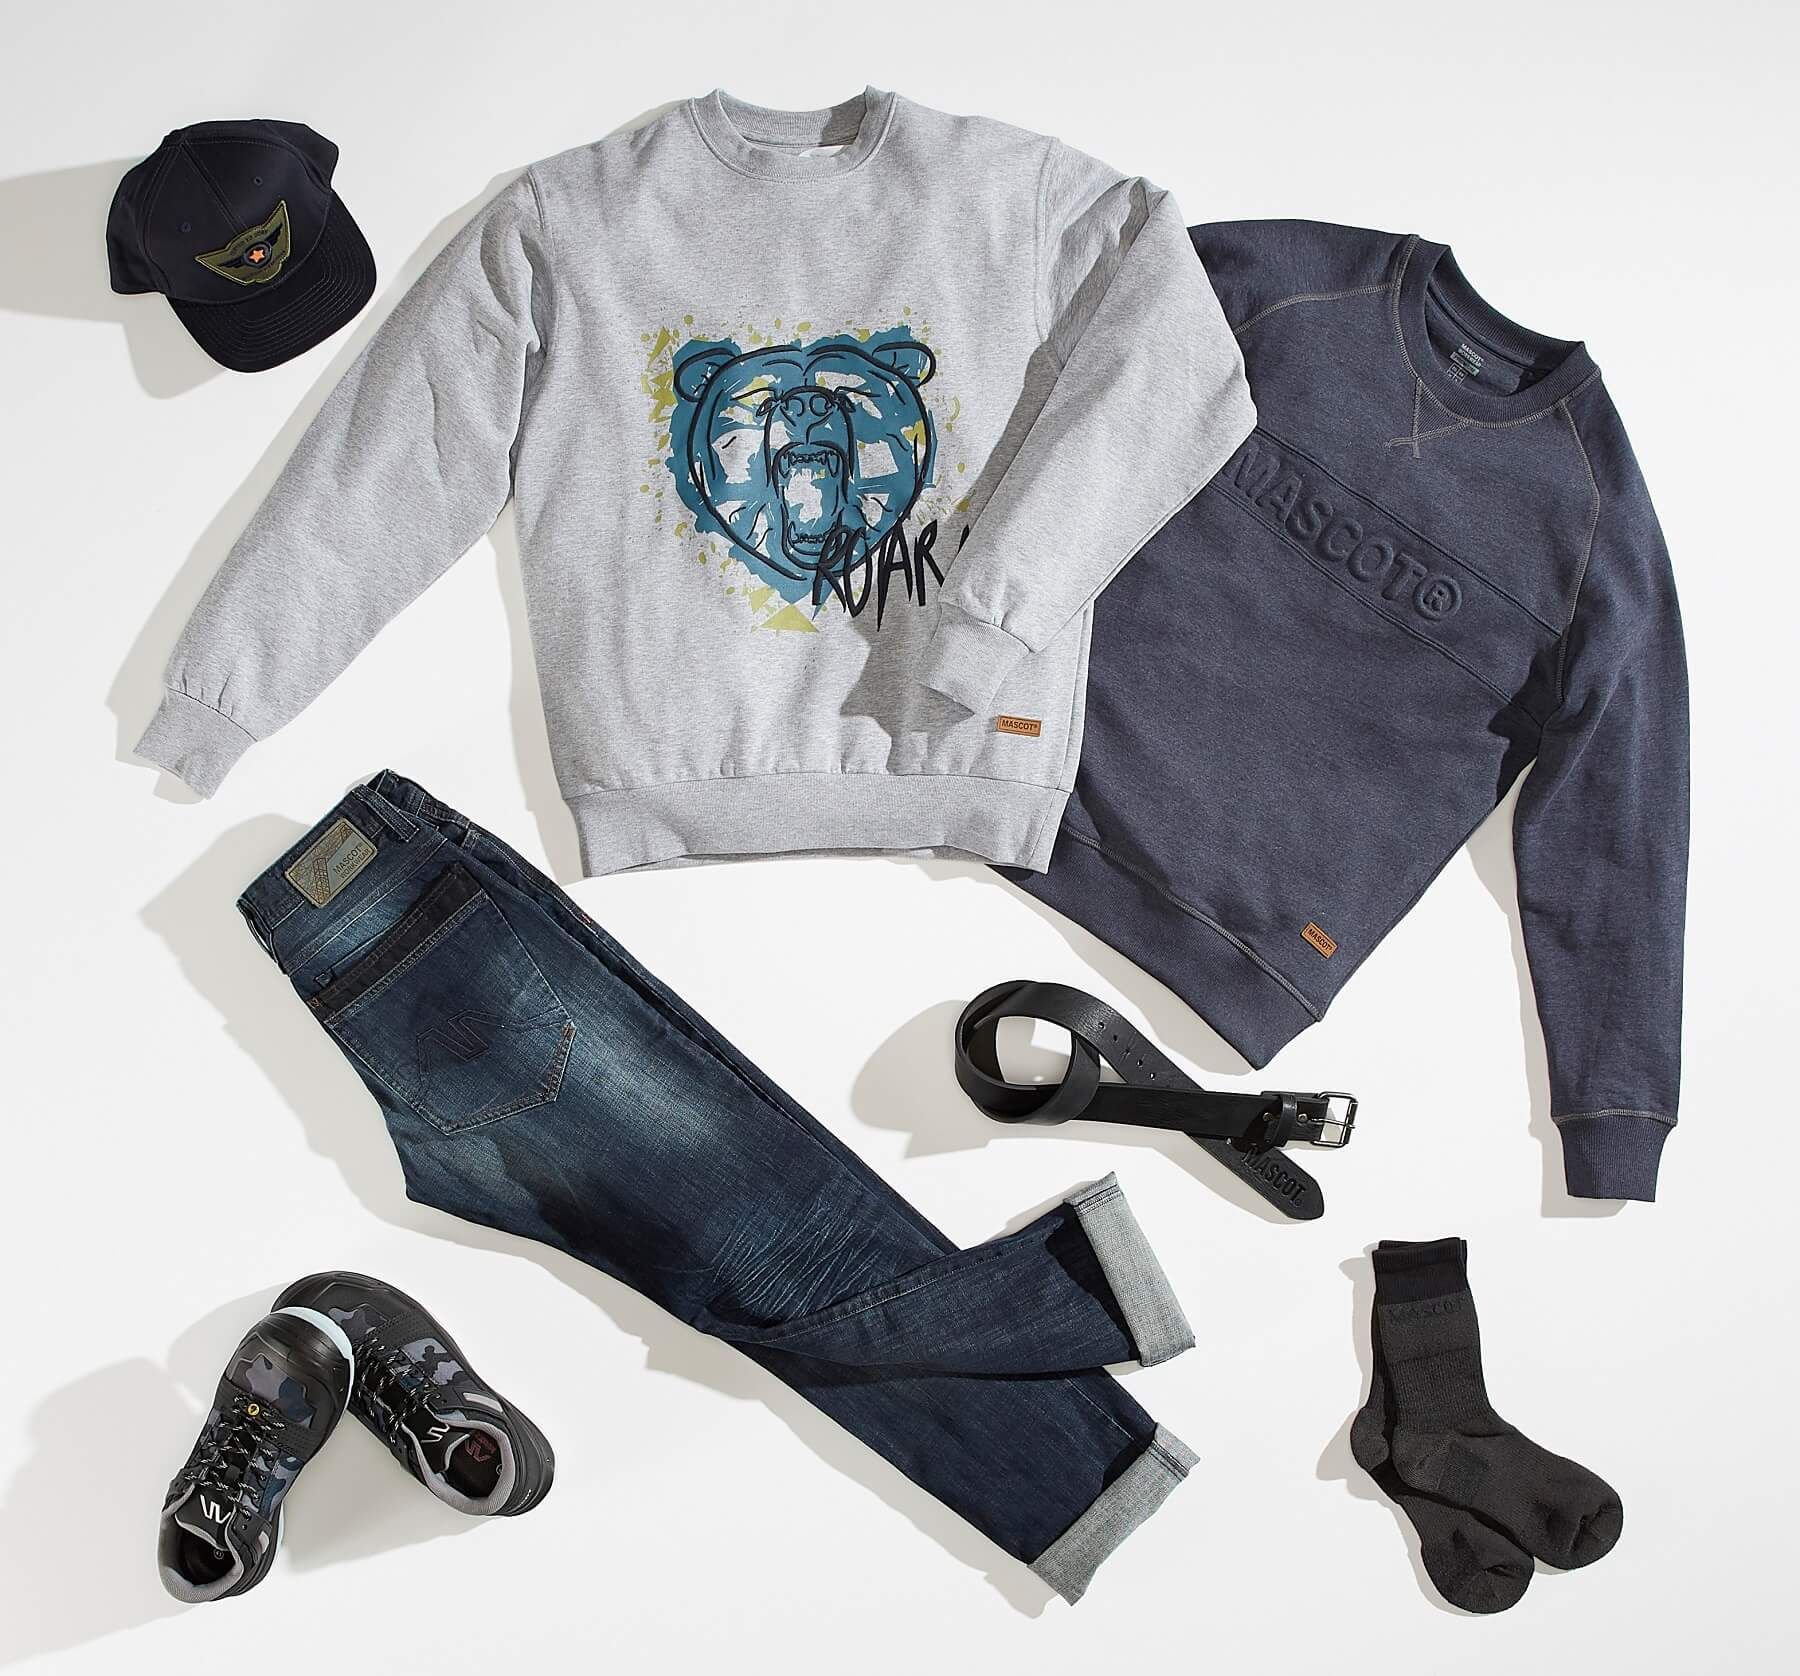 Collage - Sweatshirts, Jeans & Accessories